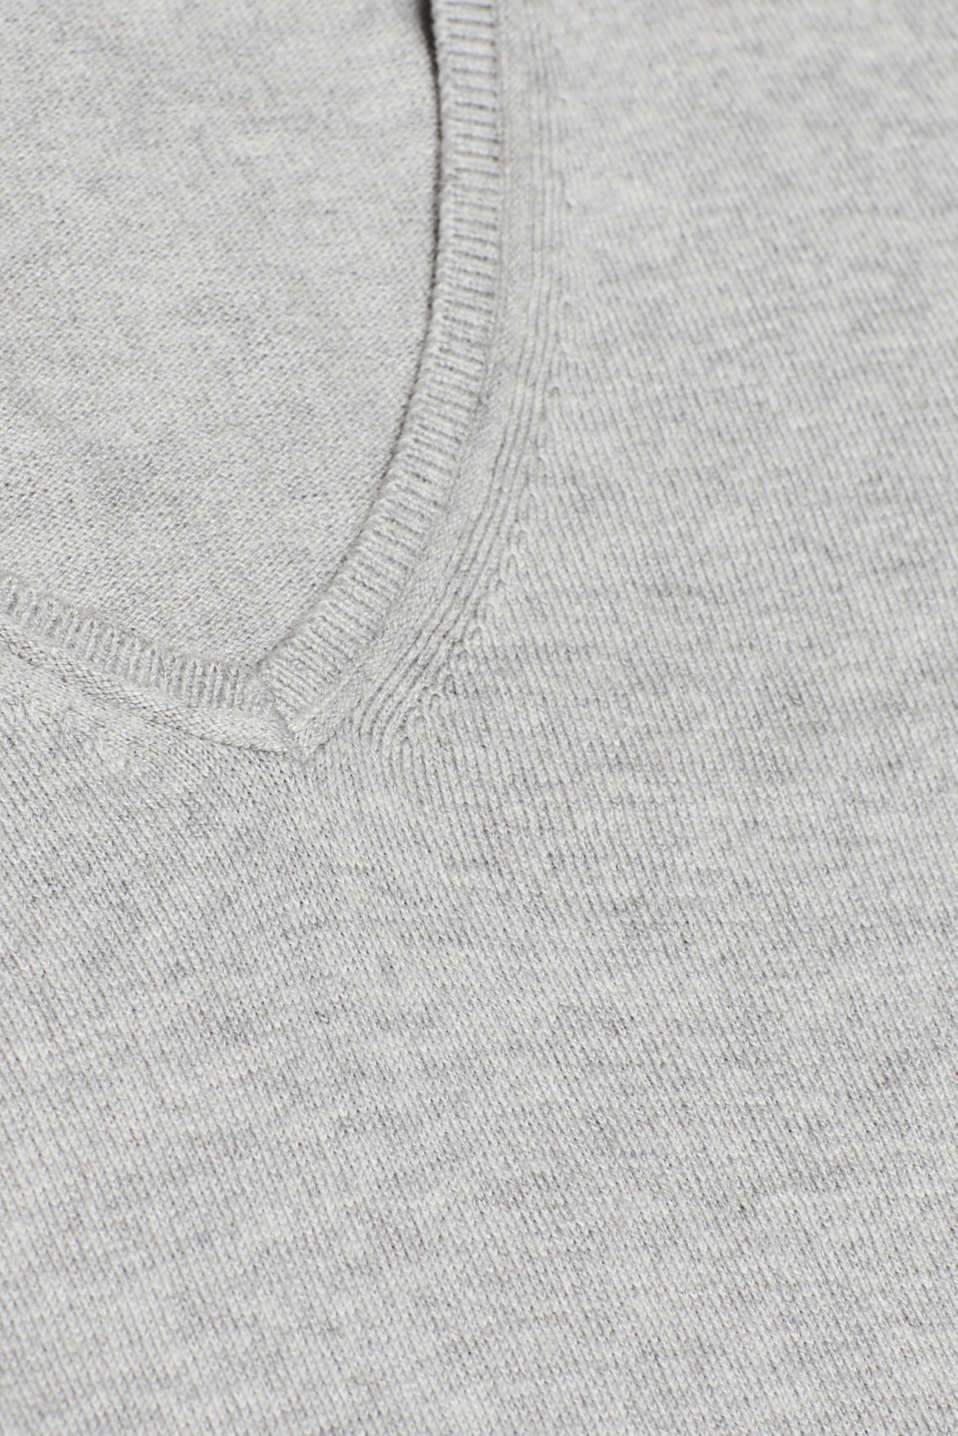 Jumper, organic cotton, LIGHT GREY 5, detail image number 4